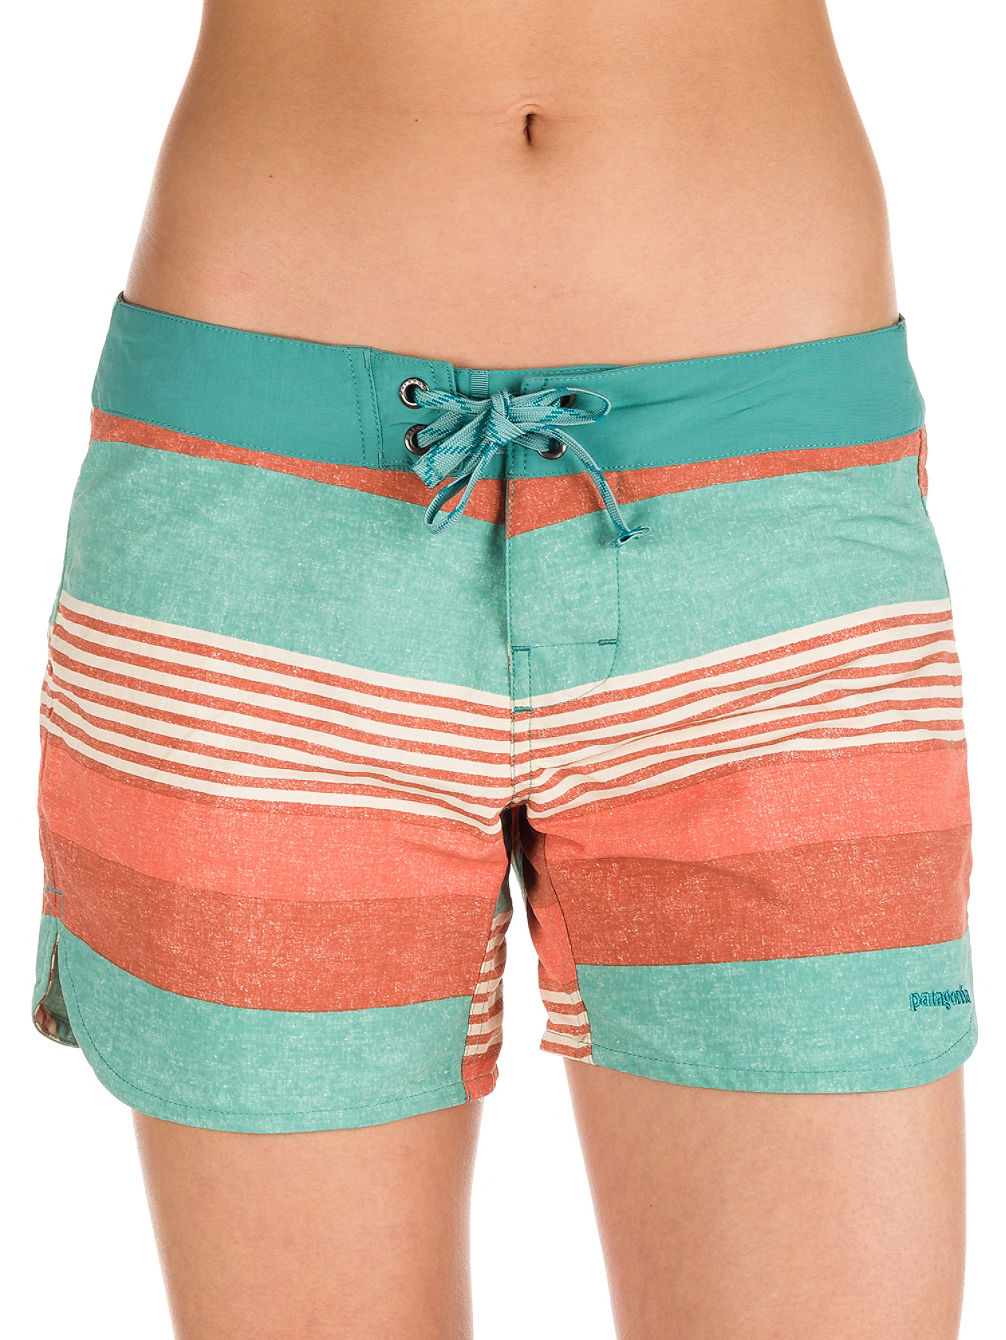 "Wavefarer 5"" Boardshorts"